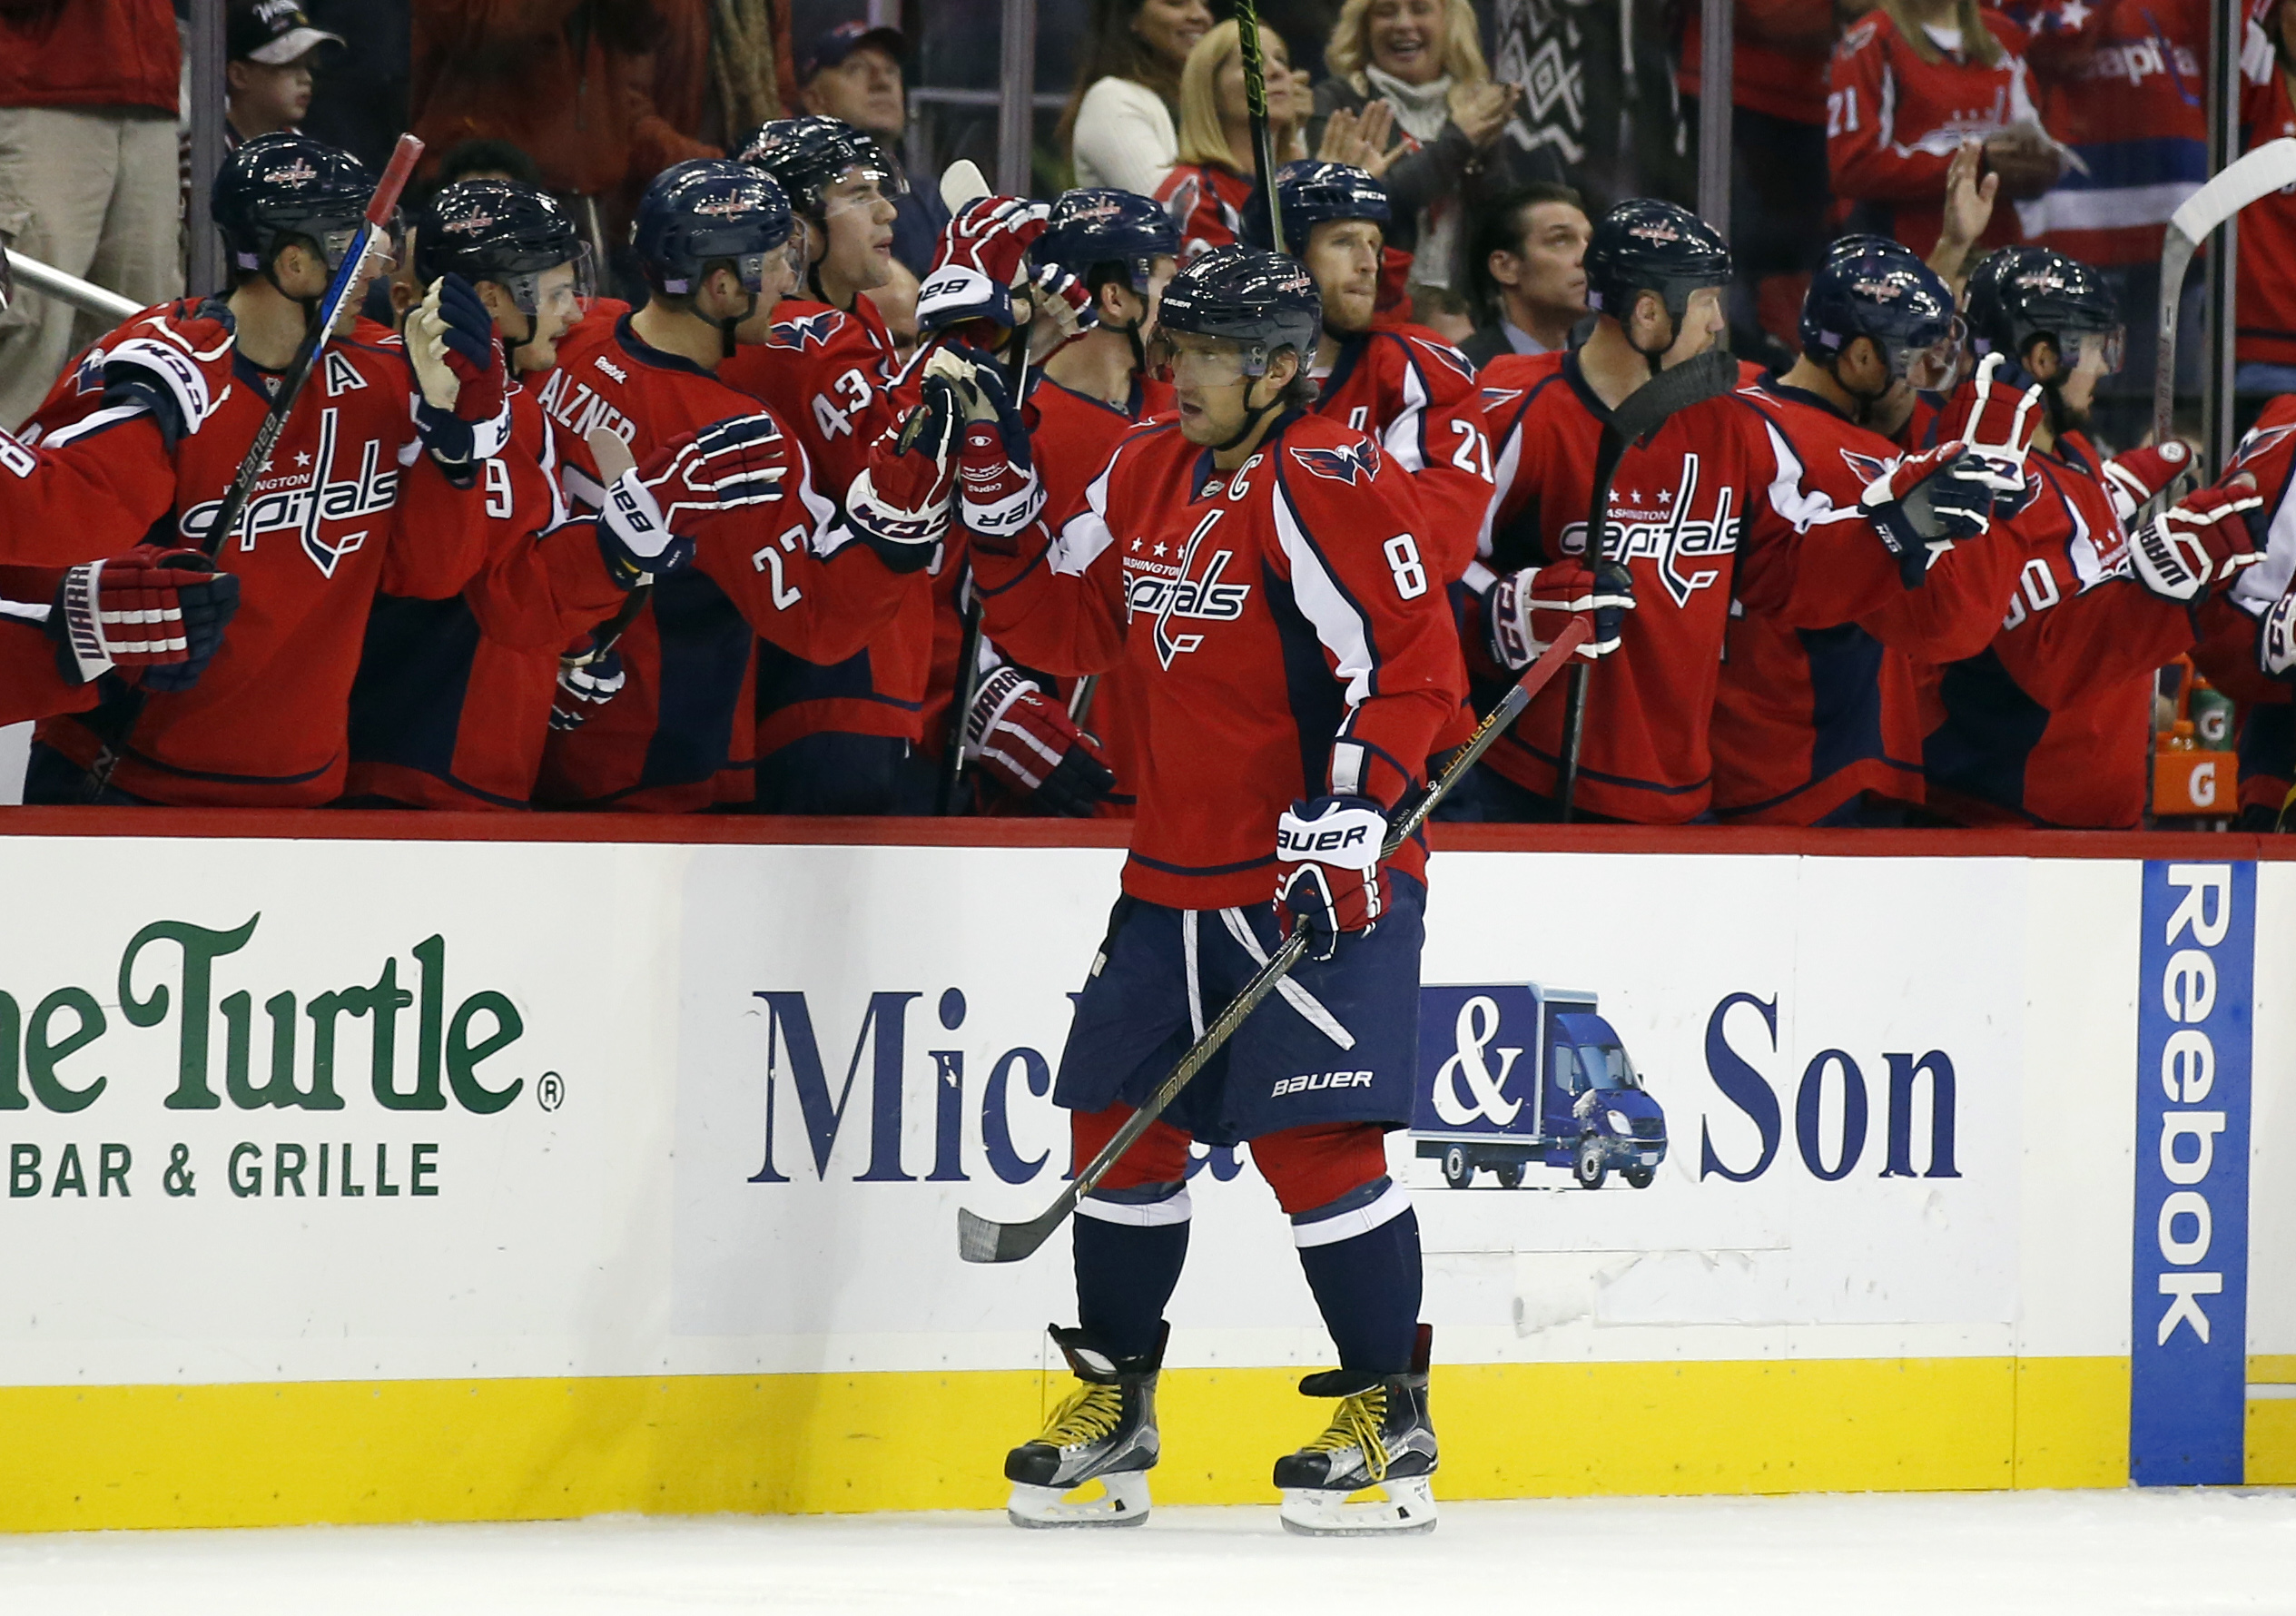 Alex Ovechkin ties record